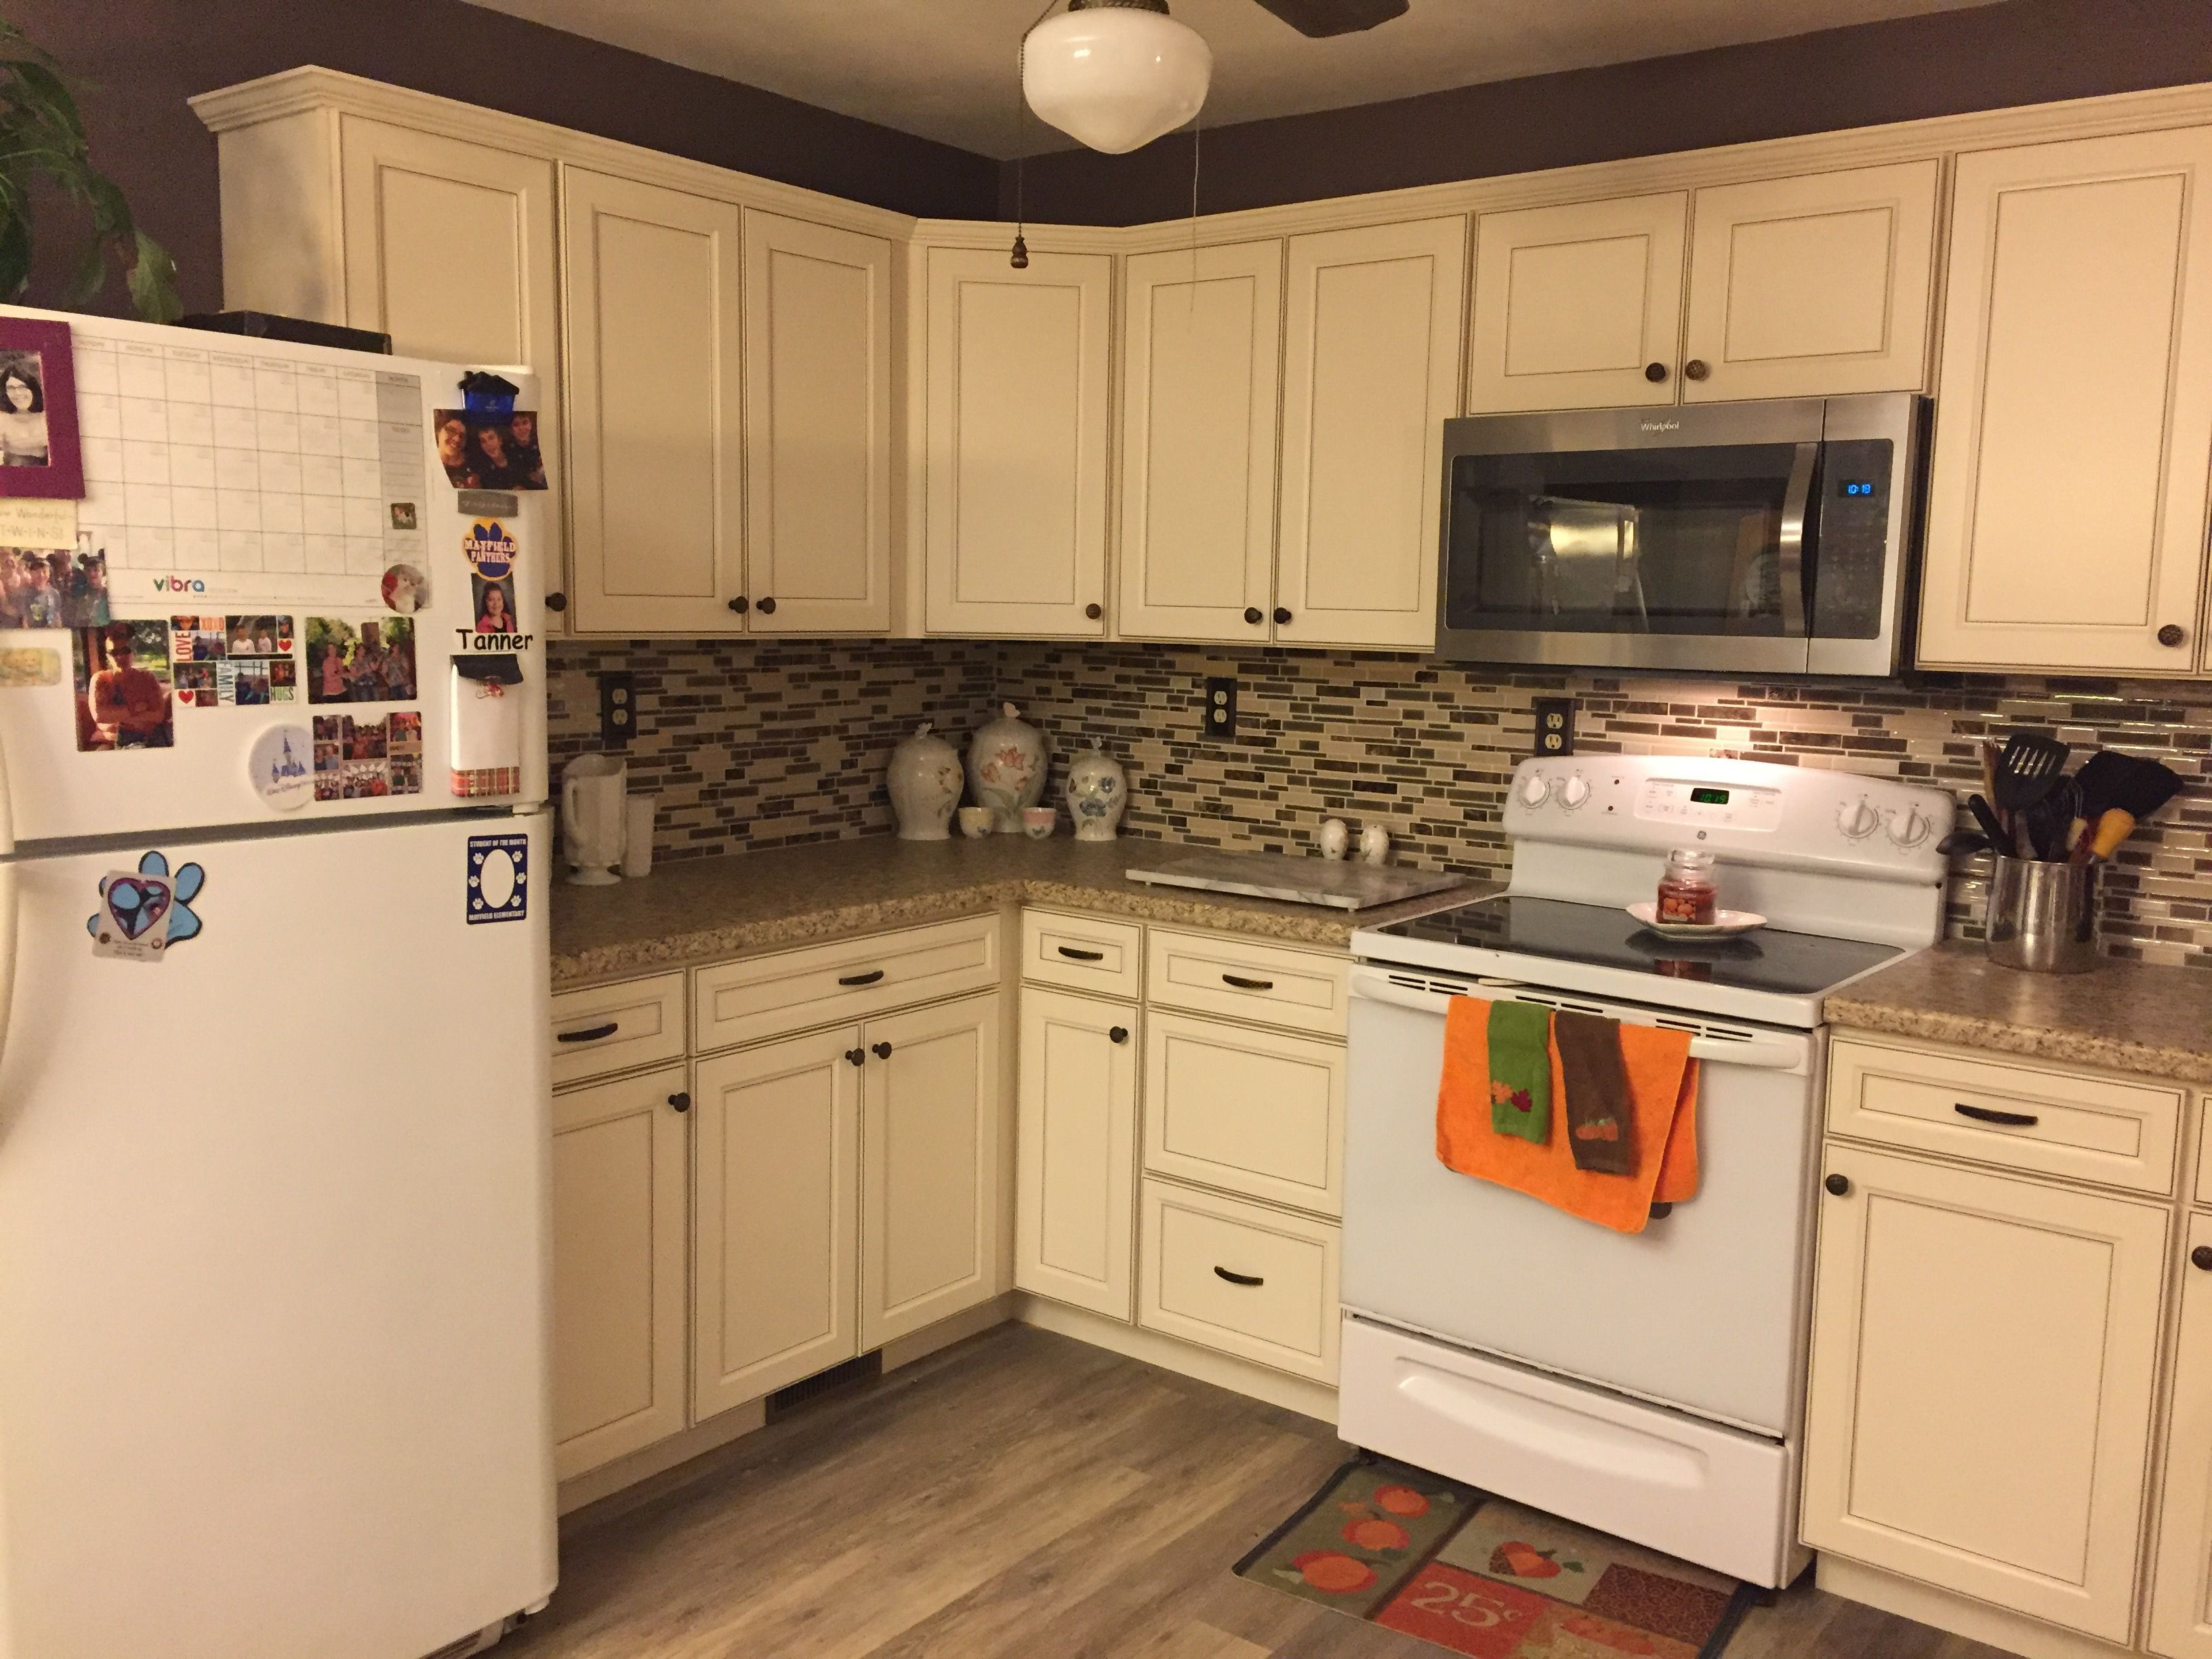 lowes caspian cabinets french country kitchens cost of on kitchen remodeling ideas and designs lowe s id=73341